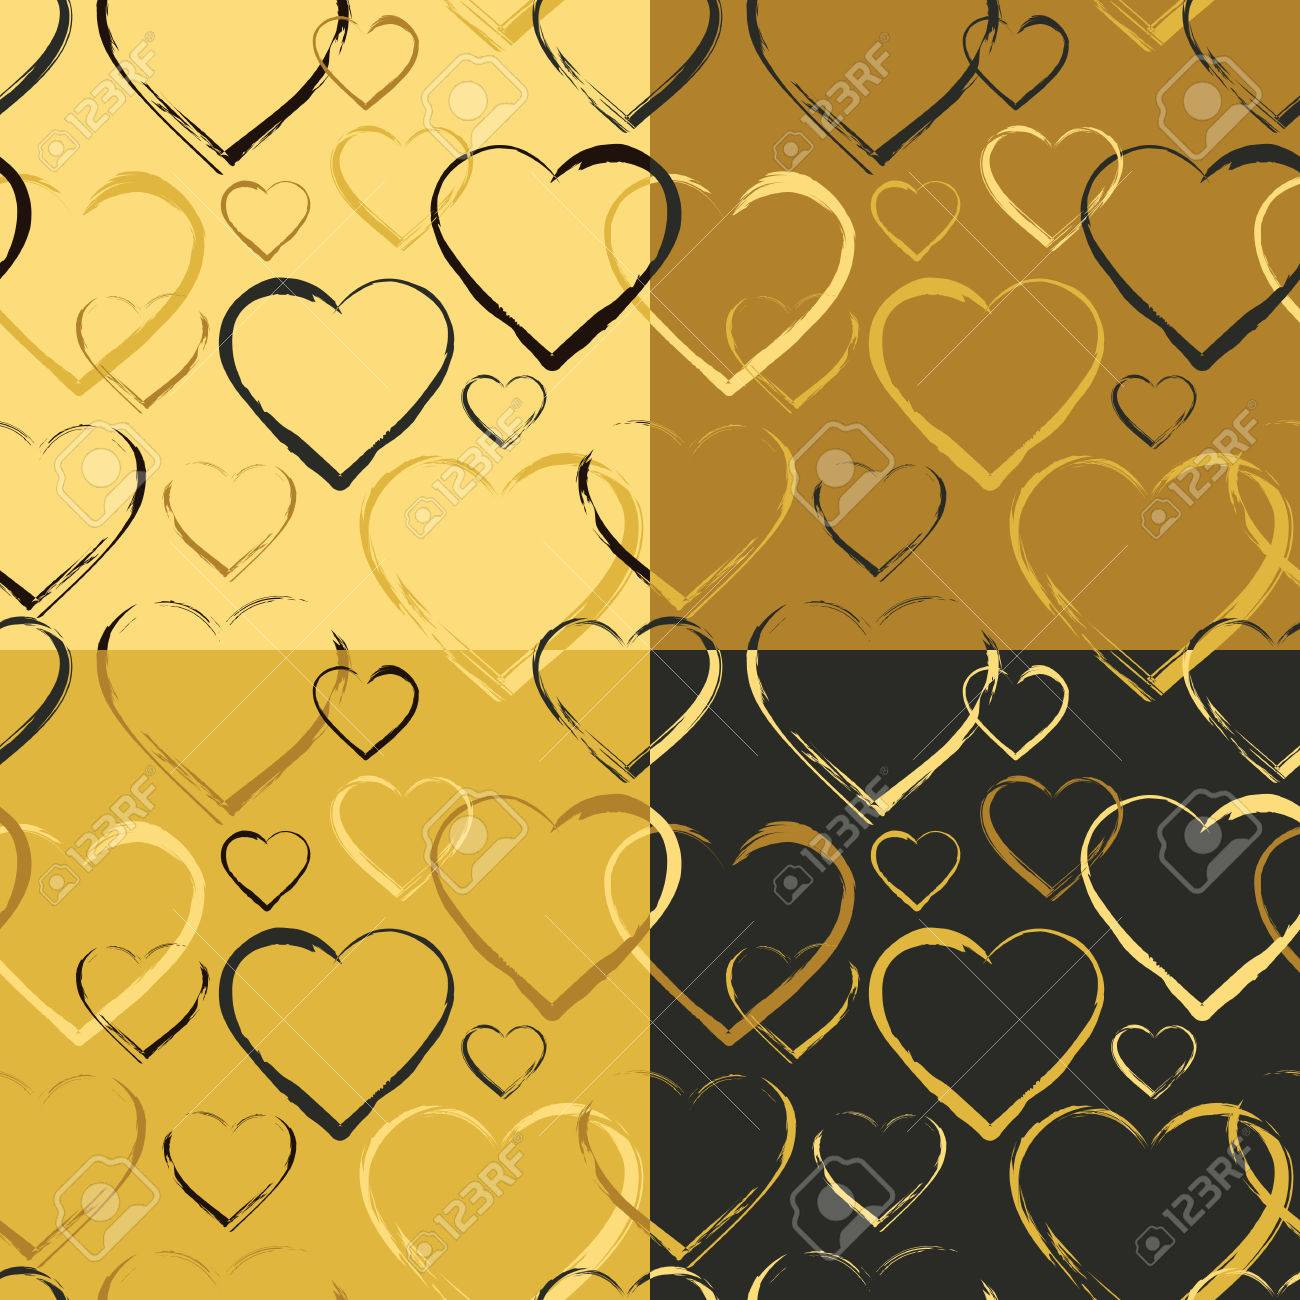 Set Of Seamless Patterns With Symbols Heart Golden Colored Hearts Randomly Scattered On Solid